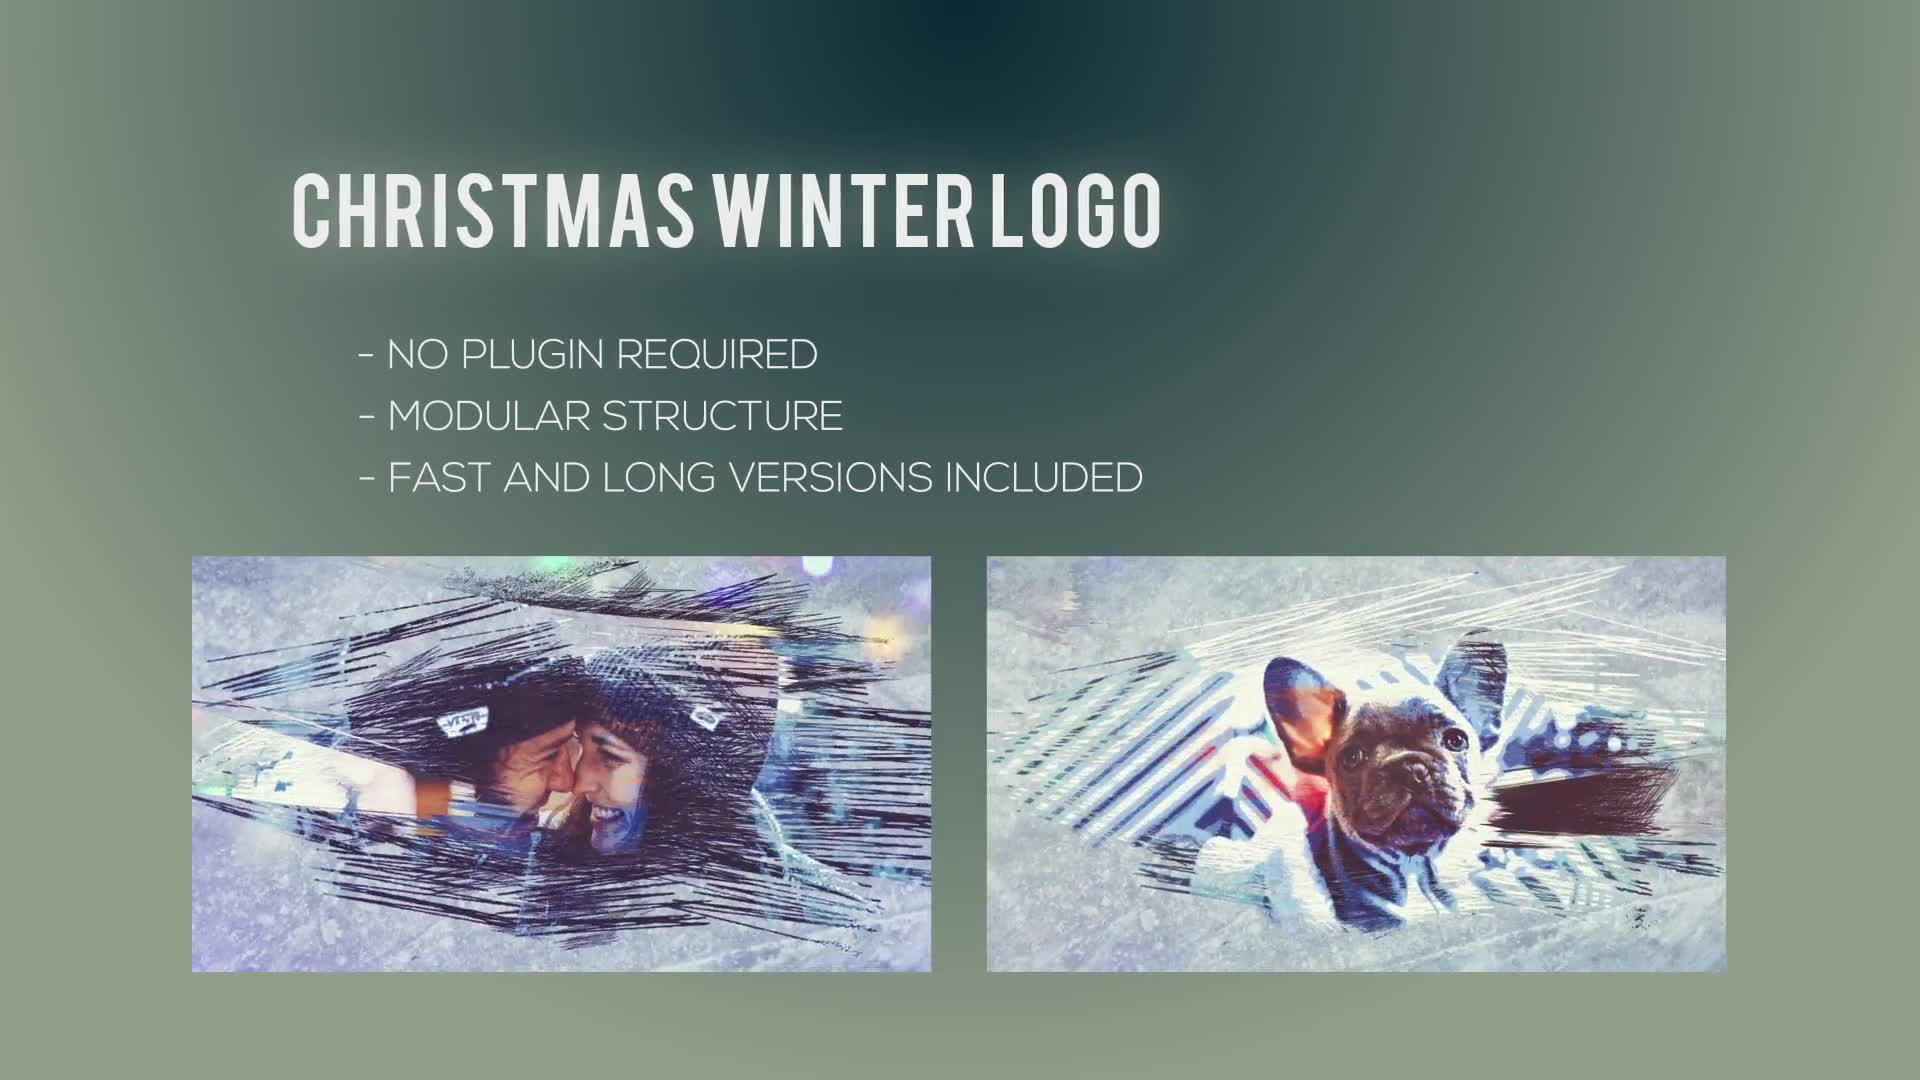 Christmas Winter Logo - Download Videohive 22847584